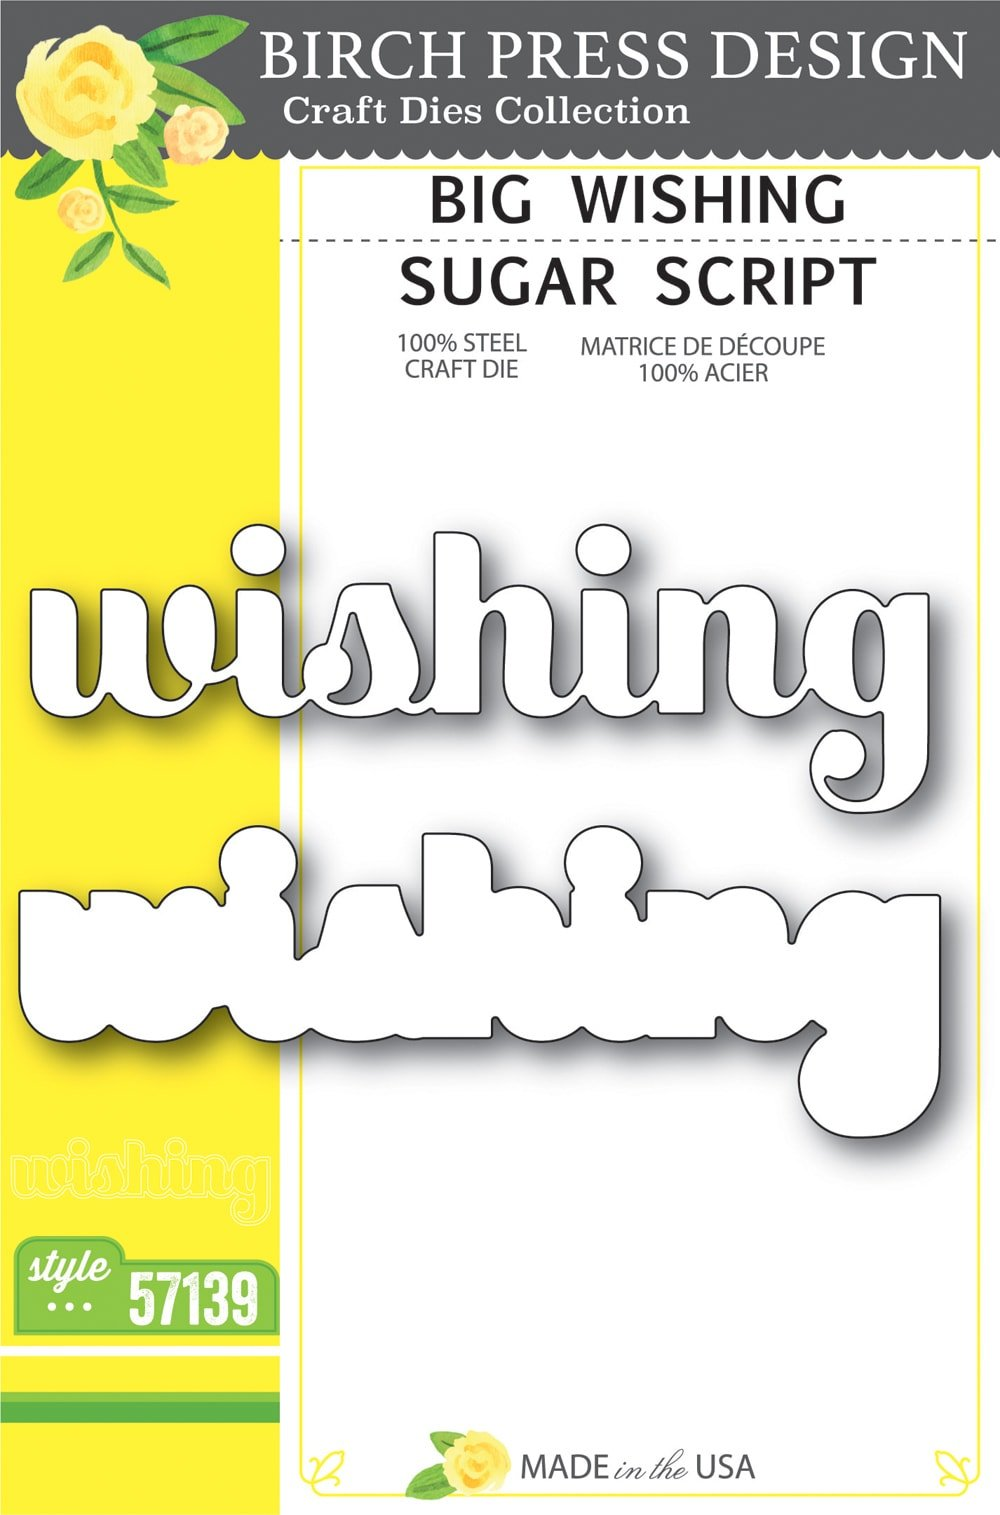 Birch Press Design - Big Wishing Sugar Script Die